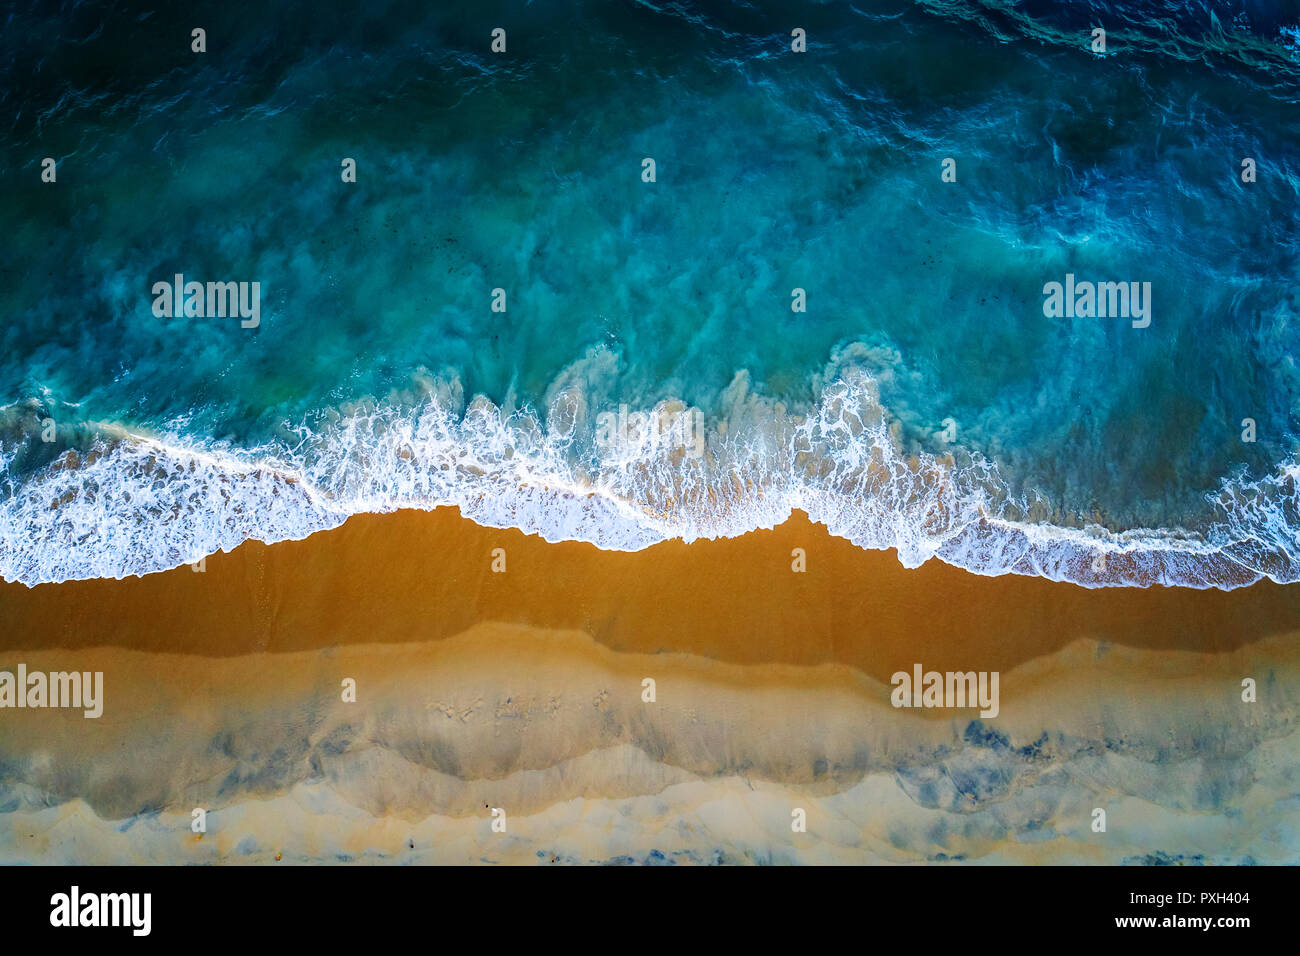 Sea, sand and surf, a drone view of a beach in Northern Sri Lanka - Stock Image